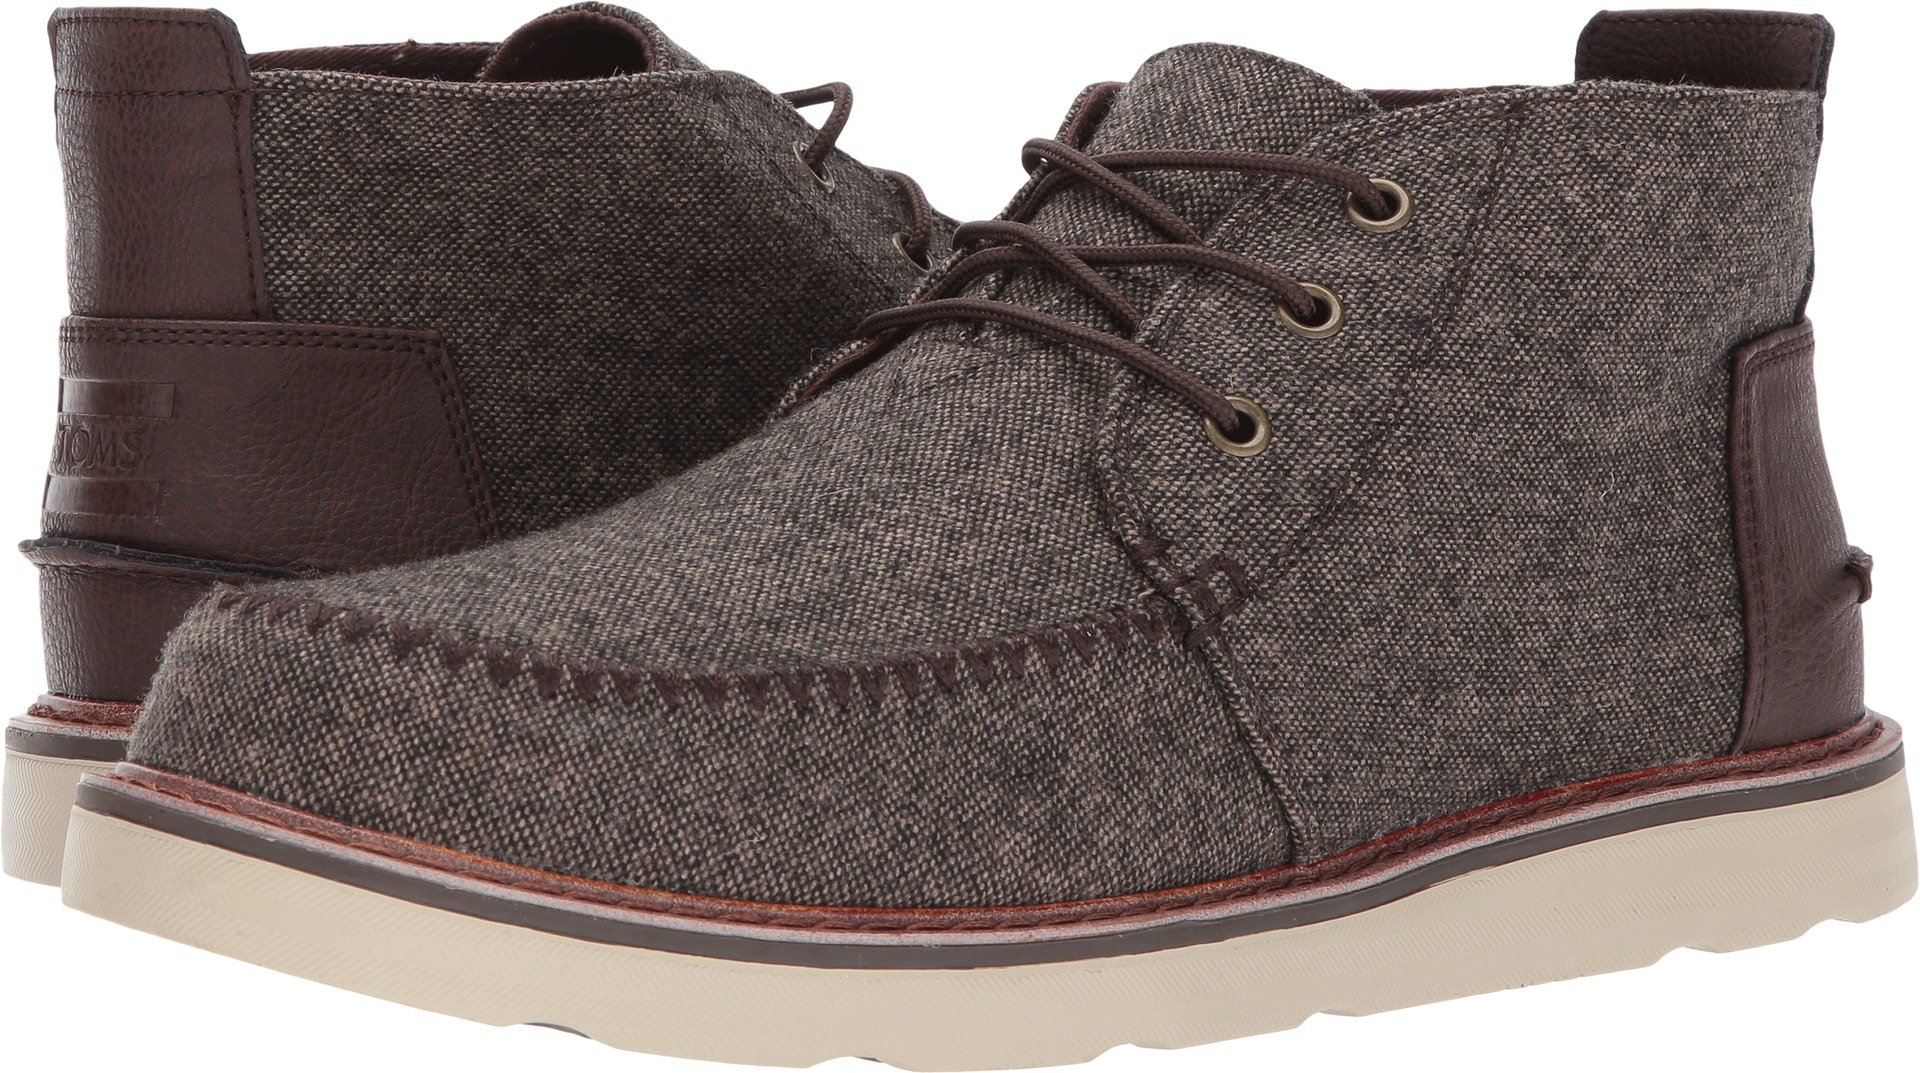 TOMS Men's Chukka Boot Chocolate Brown Brushed Wool 11 D US